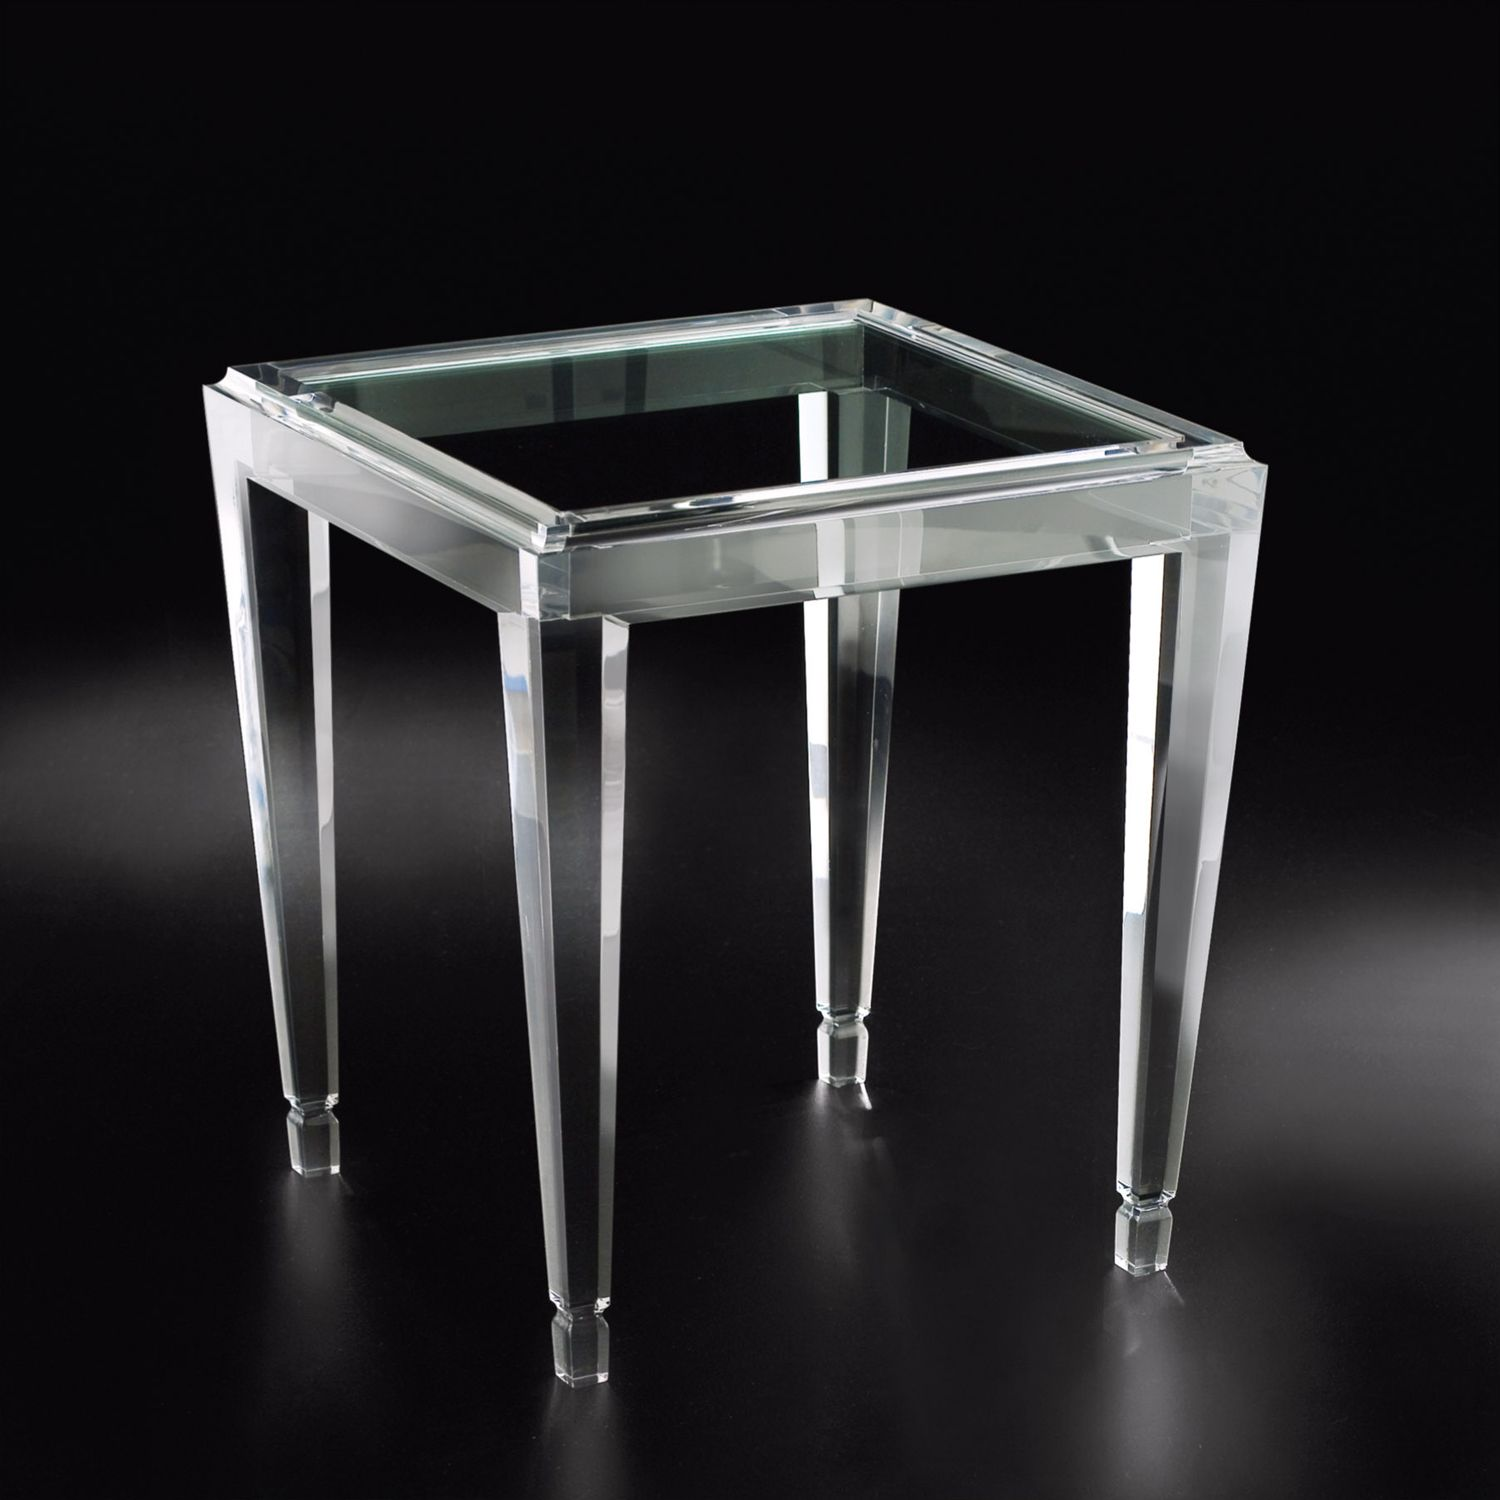 Allan Knight Acrylic Gold Palm End Table Square